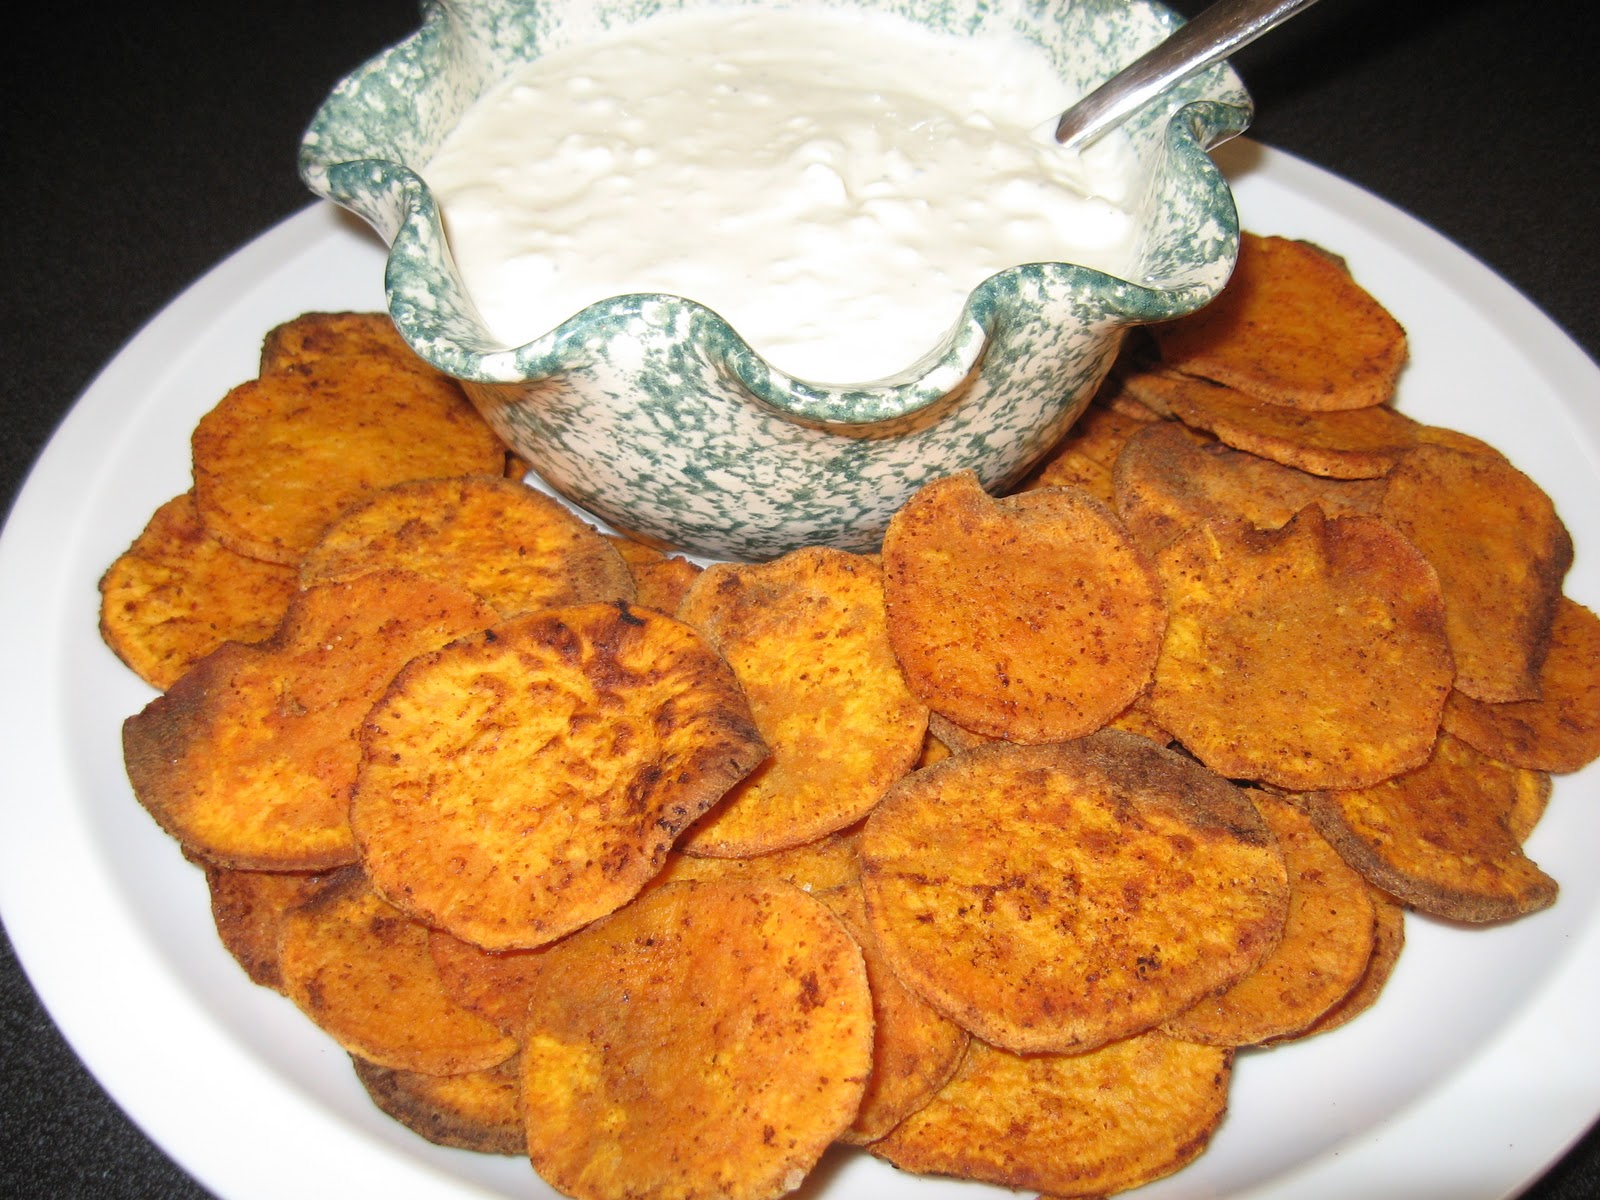 ... : Homemade Sweet Potato Chips with Blue Cheese Dressing for dipping